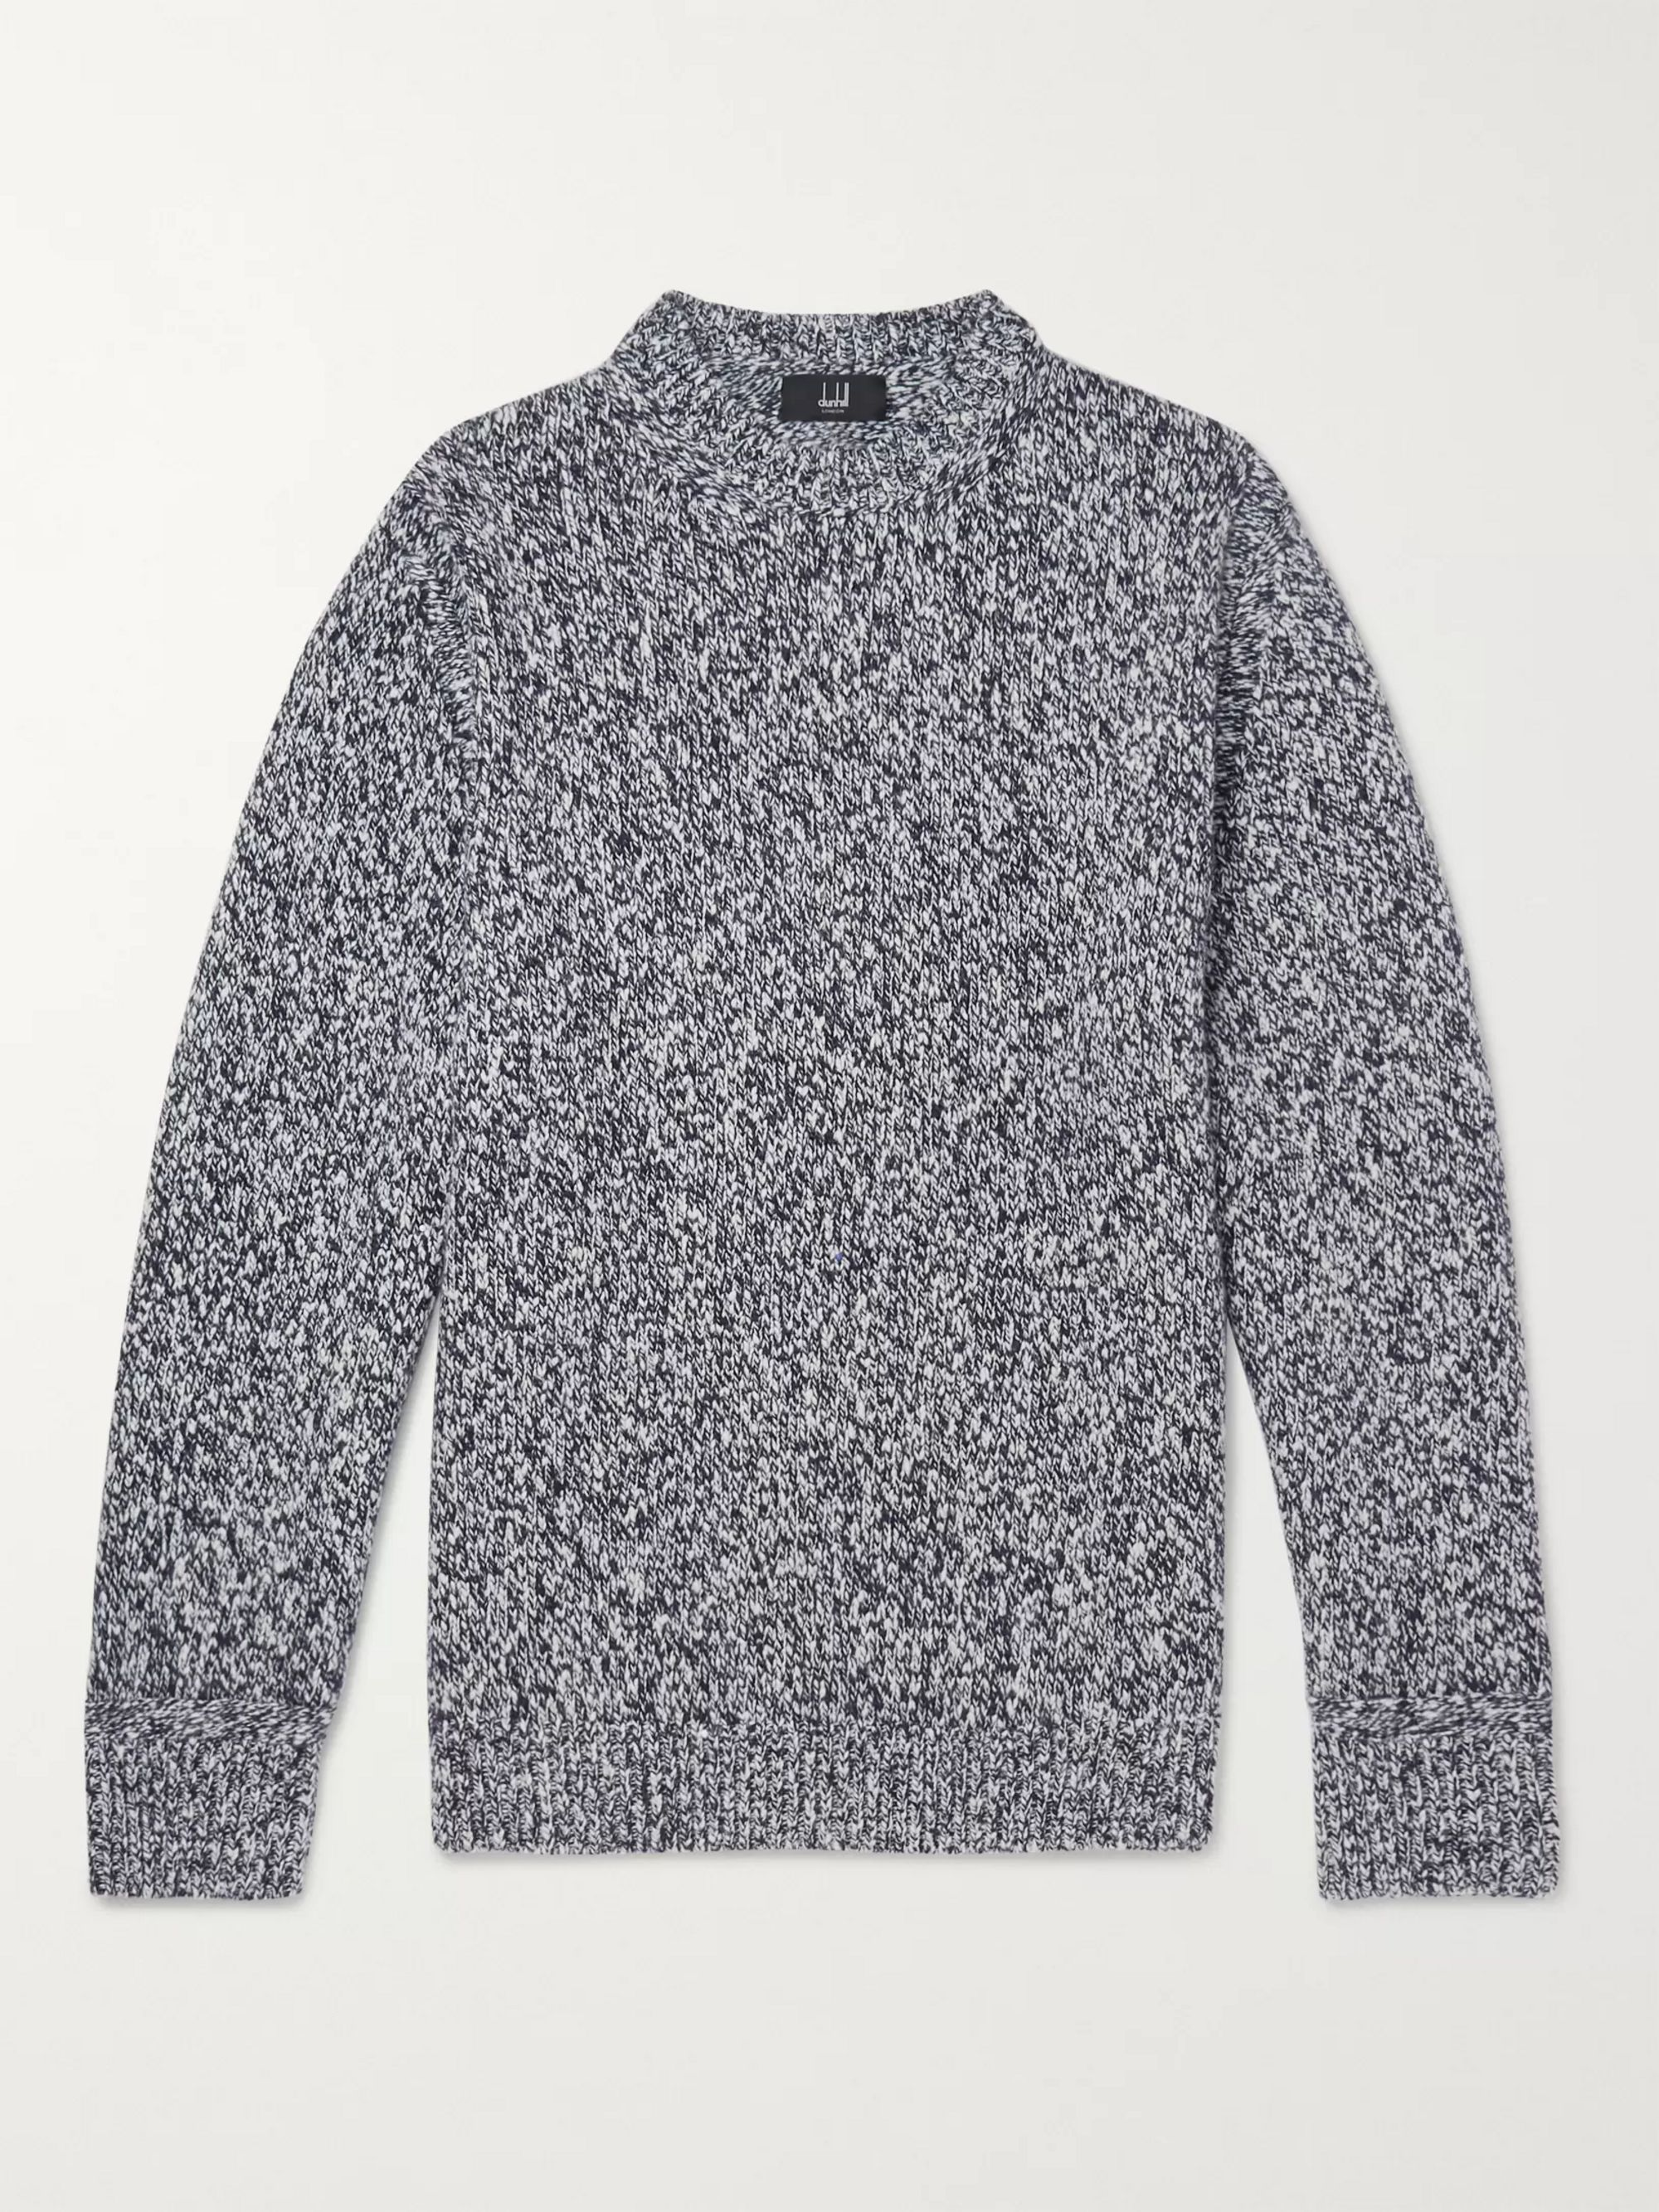 Dunhill Slub Wool and Cashmere-Blend Sweater